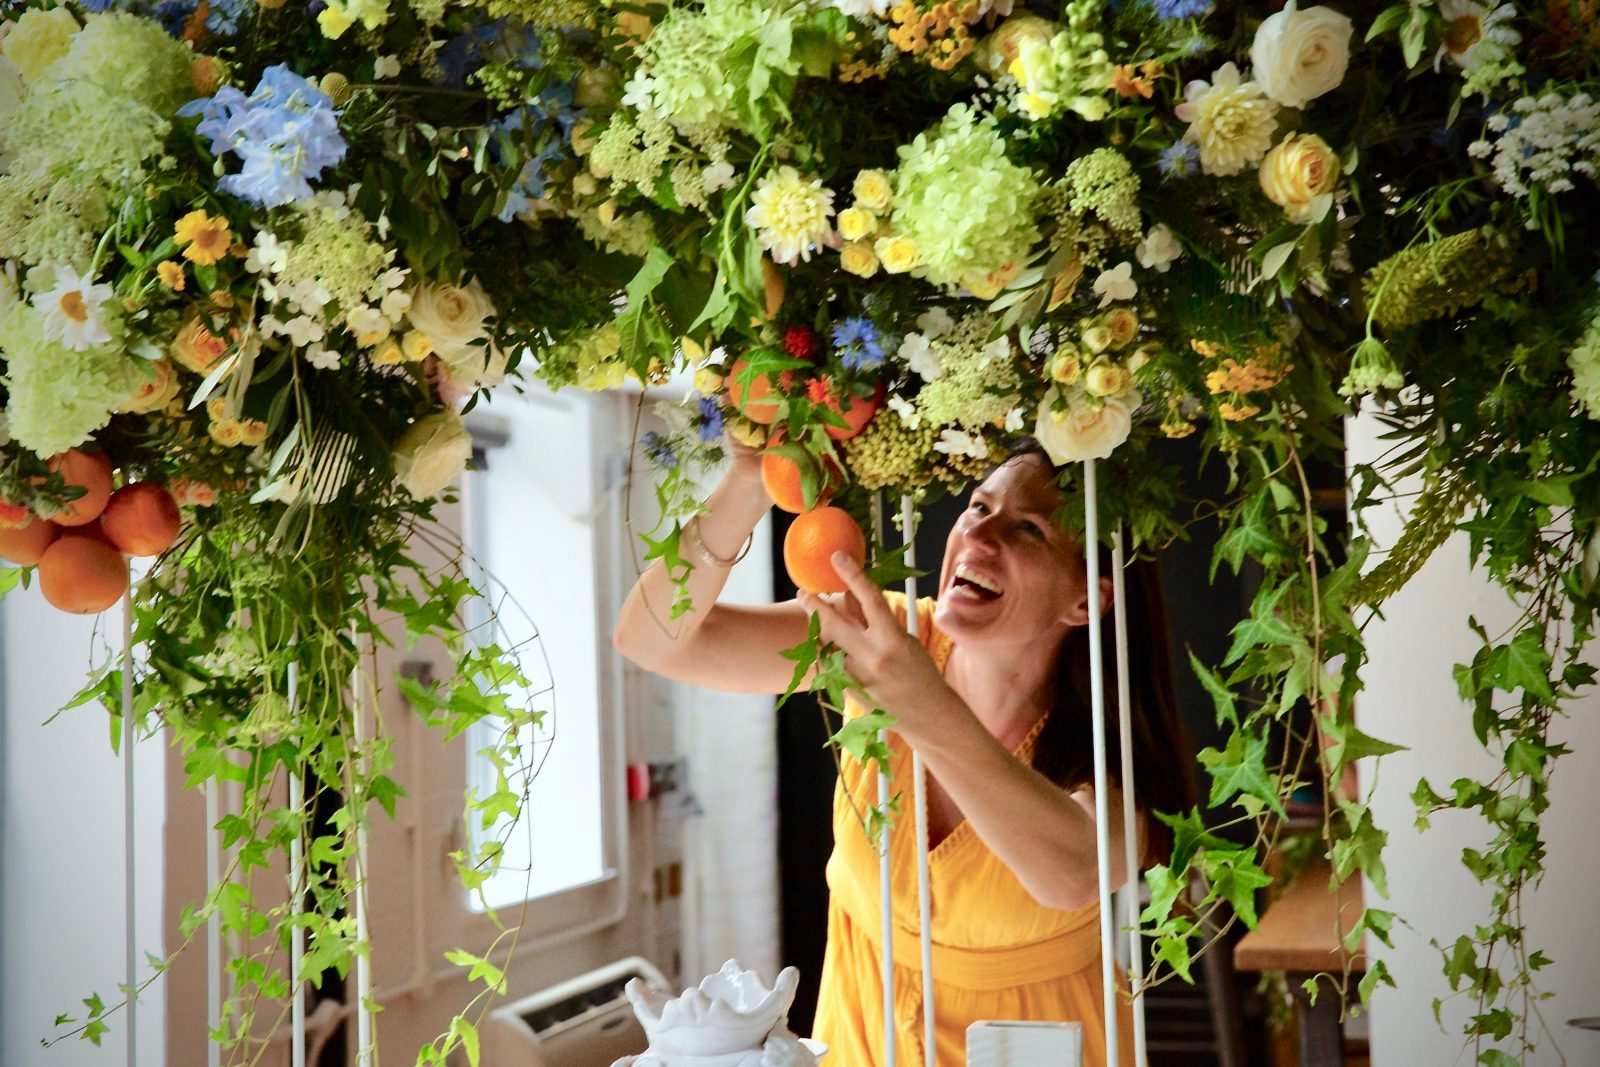 Robe Flower School. No previous experience required.Full and half day classes. Creative and fun.